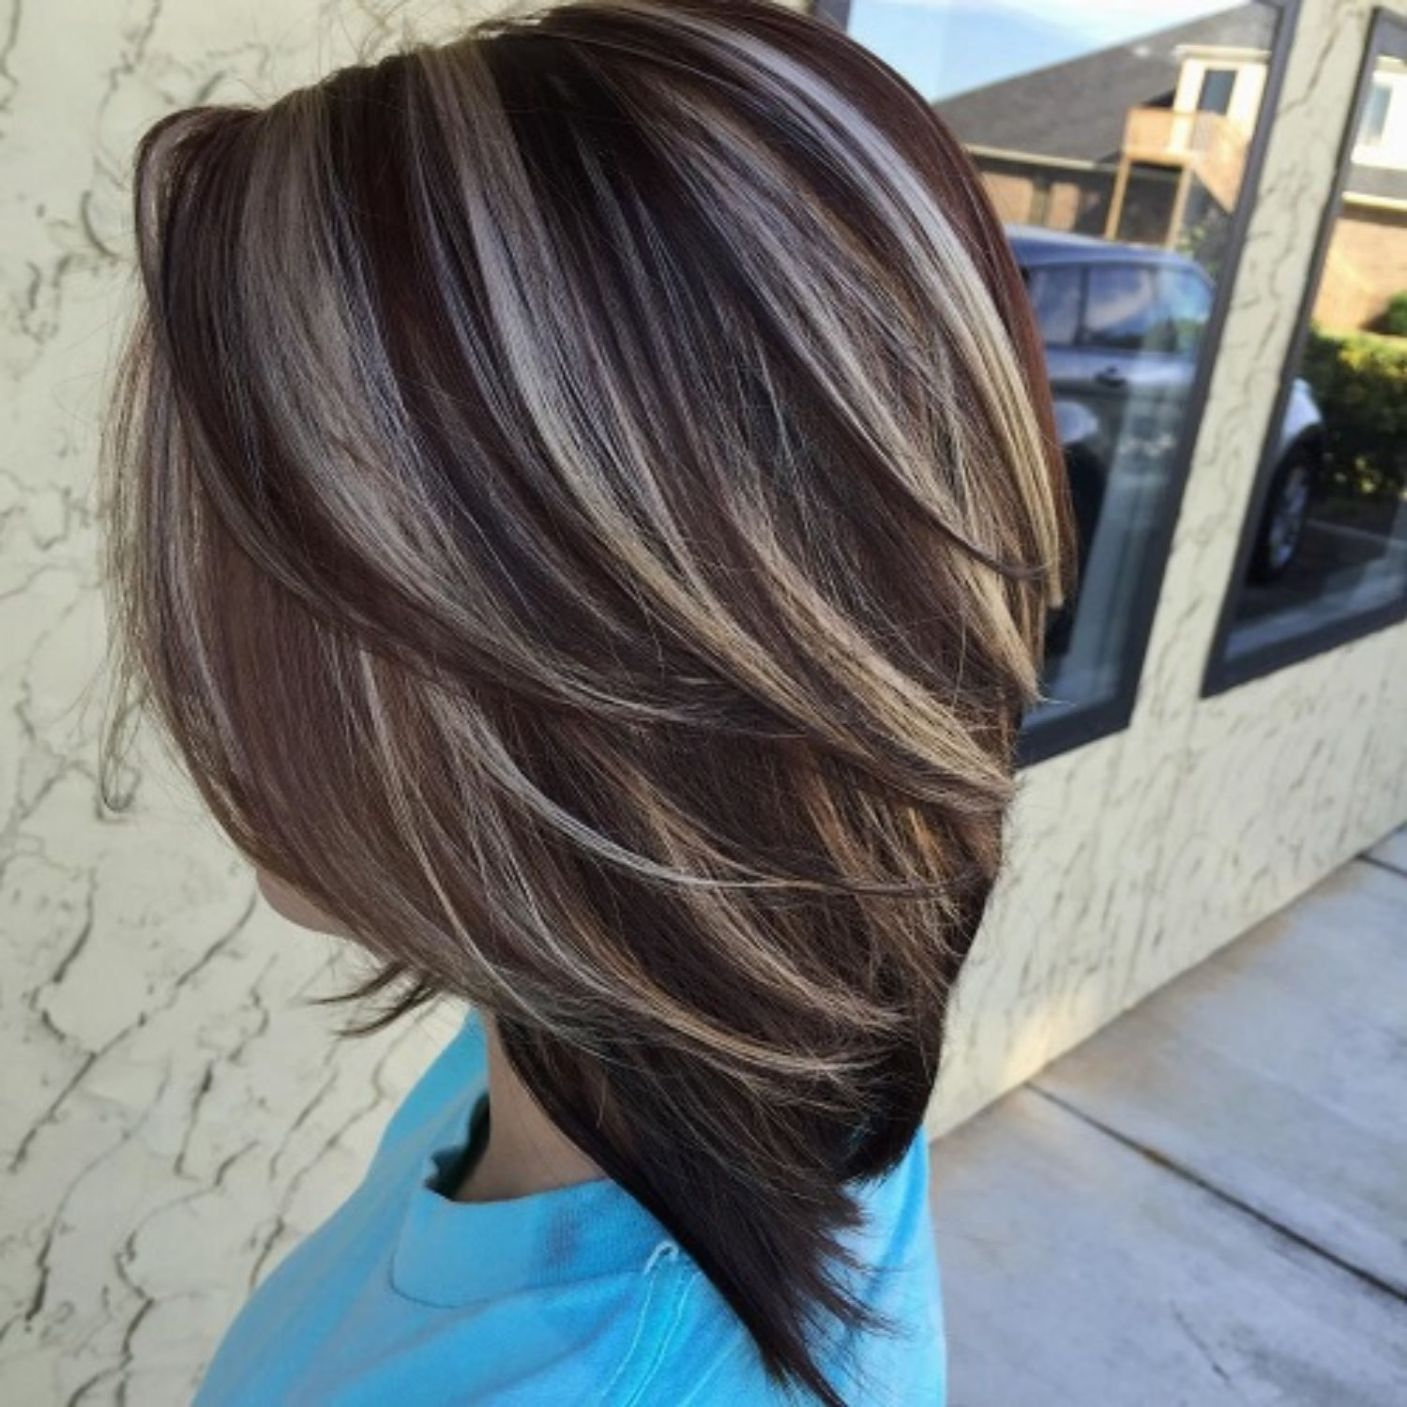 60 Hairstyles Featuring Dark Brown Hair with Highlights -   7 hair Grey highlights